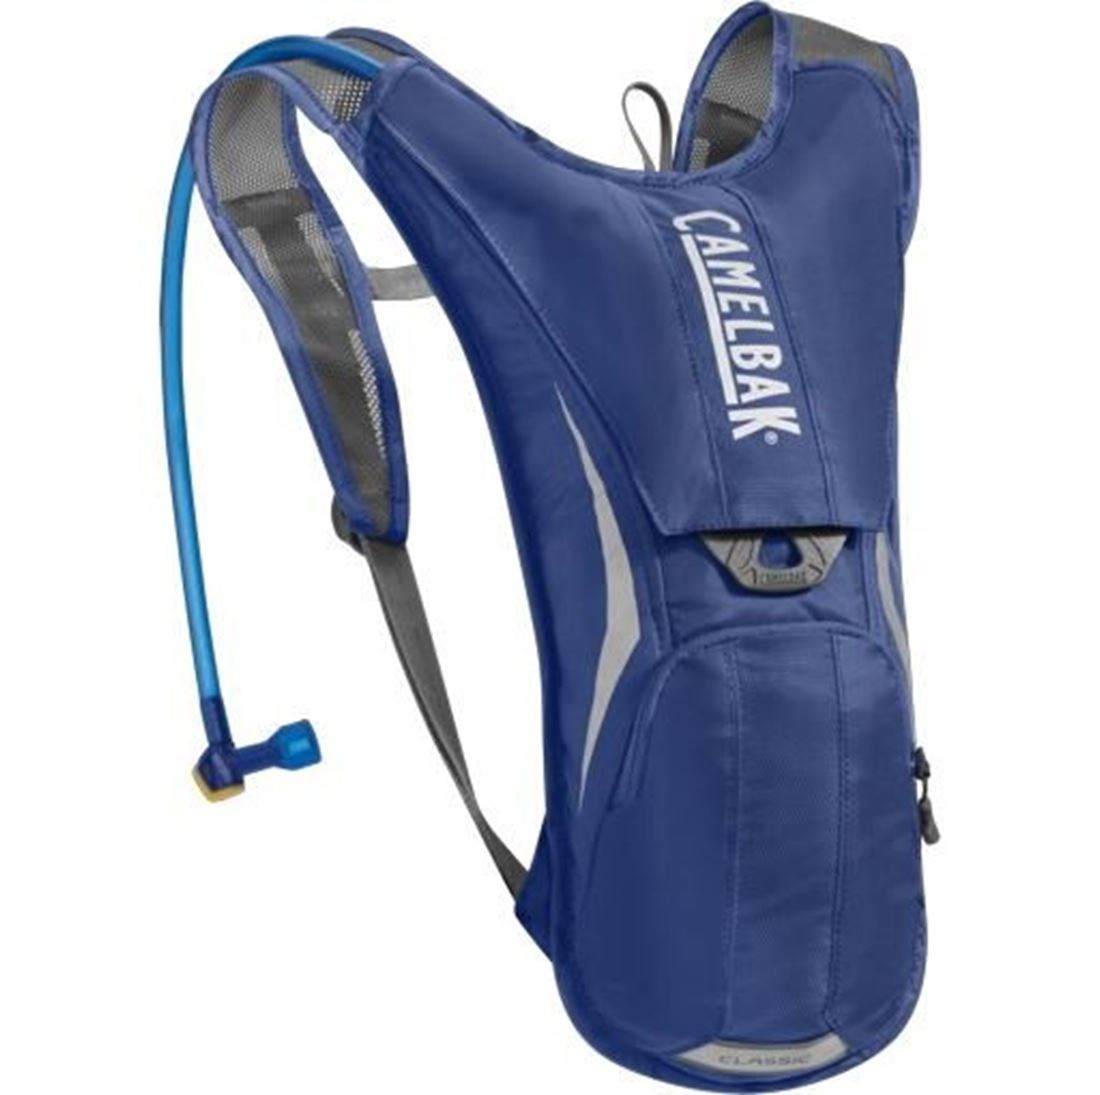 Picture of Camelbak Classic 2L Hydration Pack